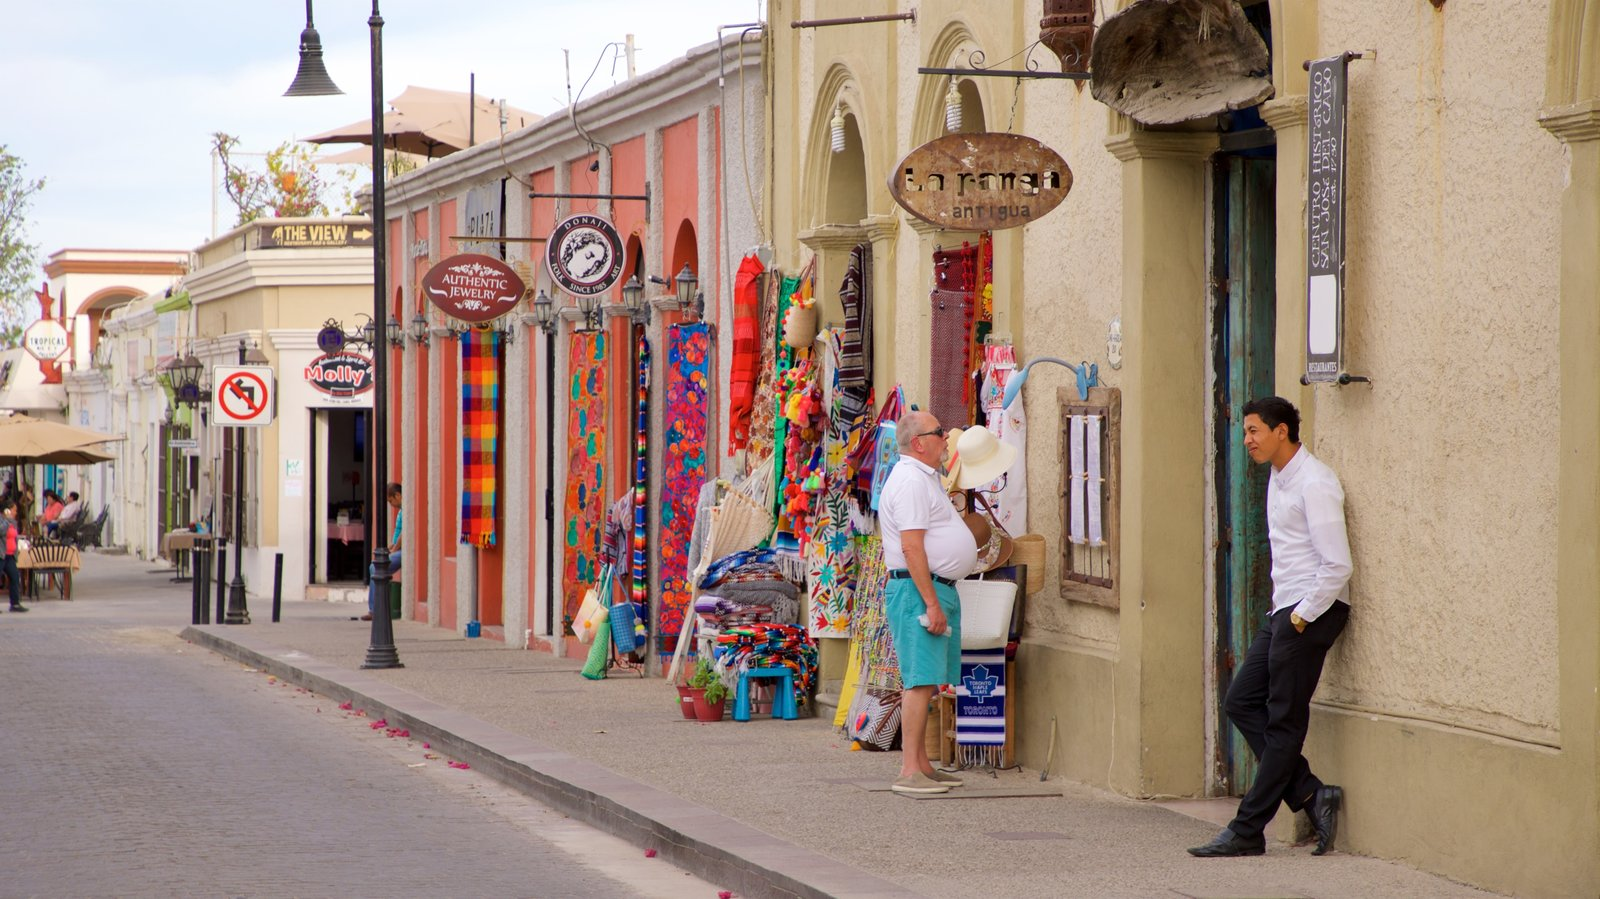 San Jose del Cabo Art District which includes street scenes as well as an individual male